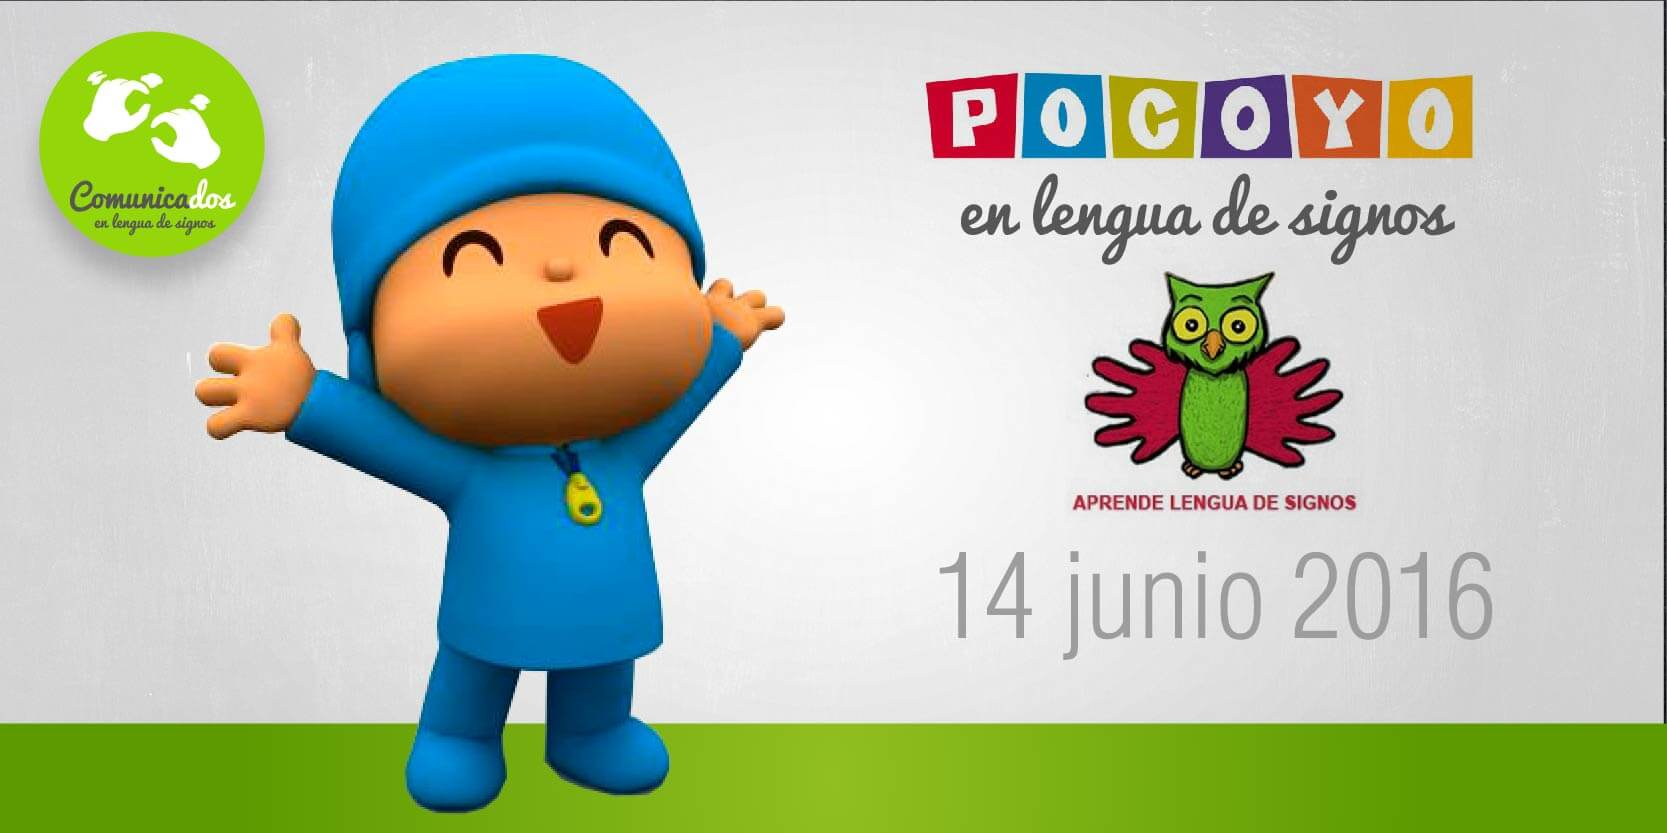 Aprenderenlenguasigno Noticia Pocoyo